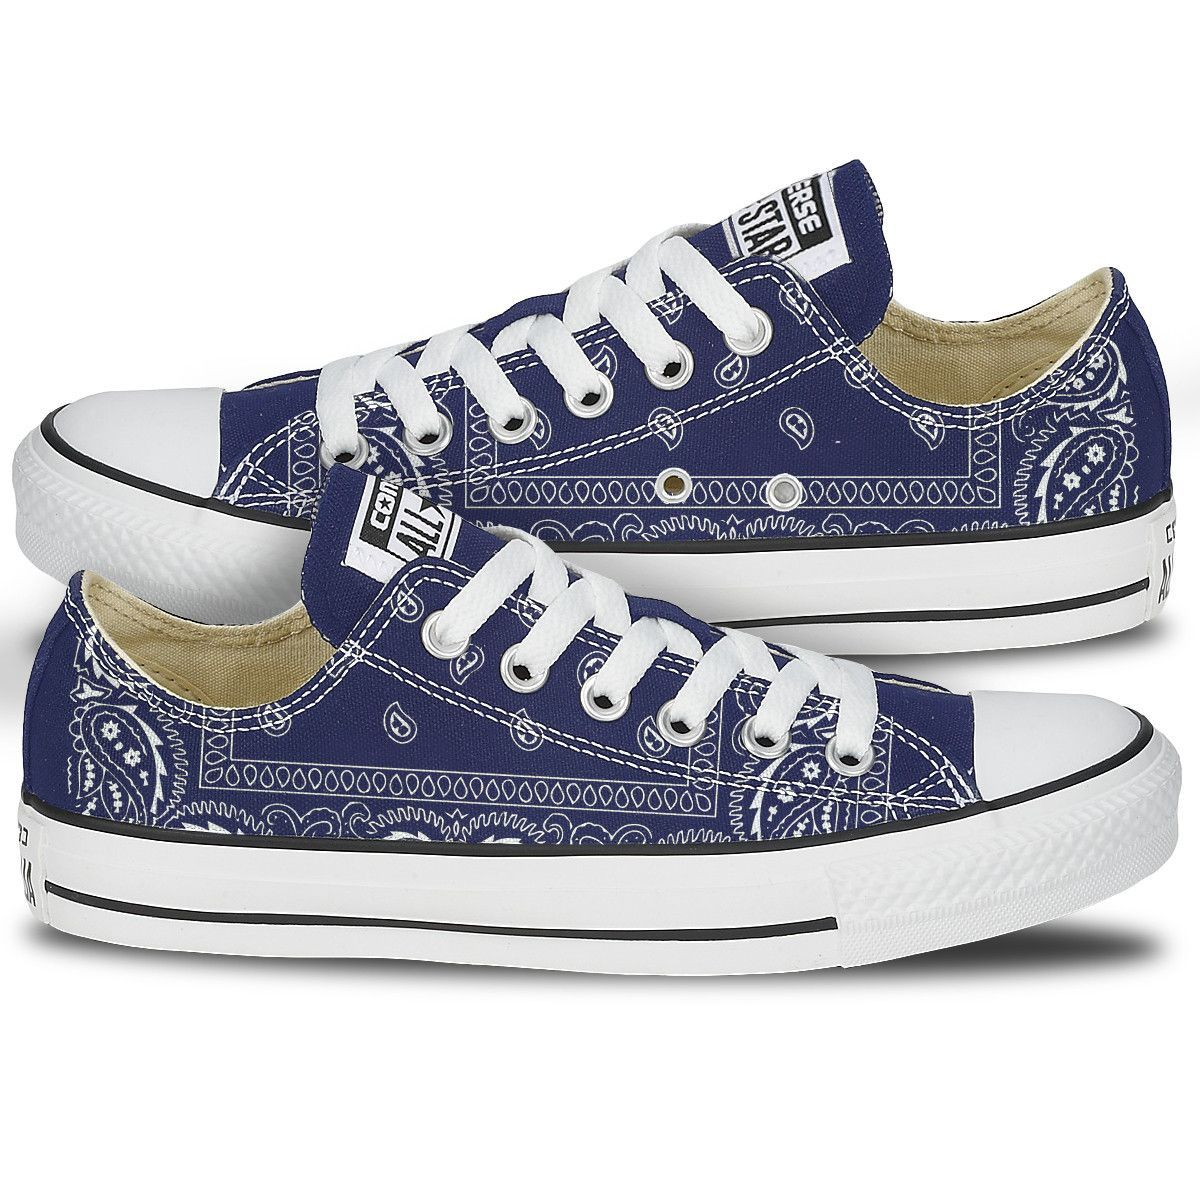 26c1d117091a Blue Bandana Converse Shoes